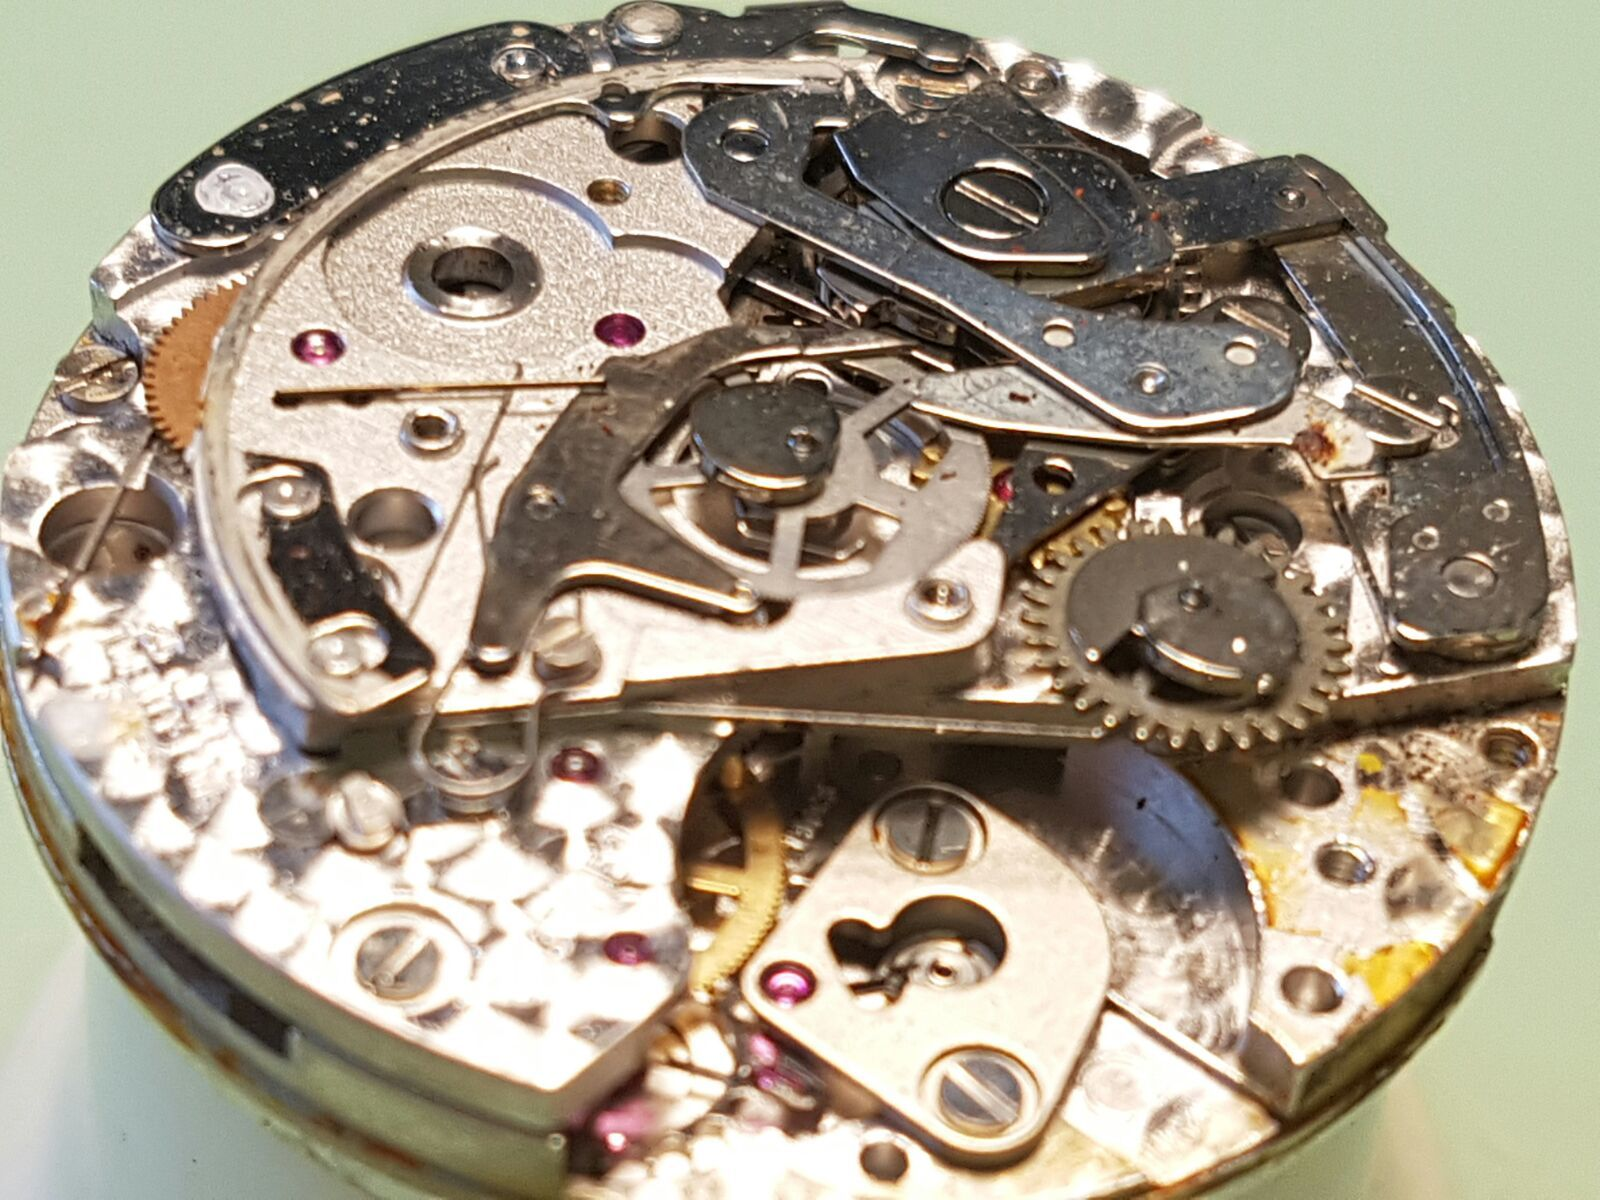 Watch repairs and alterations